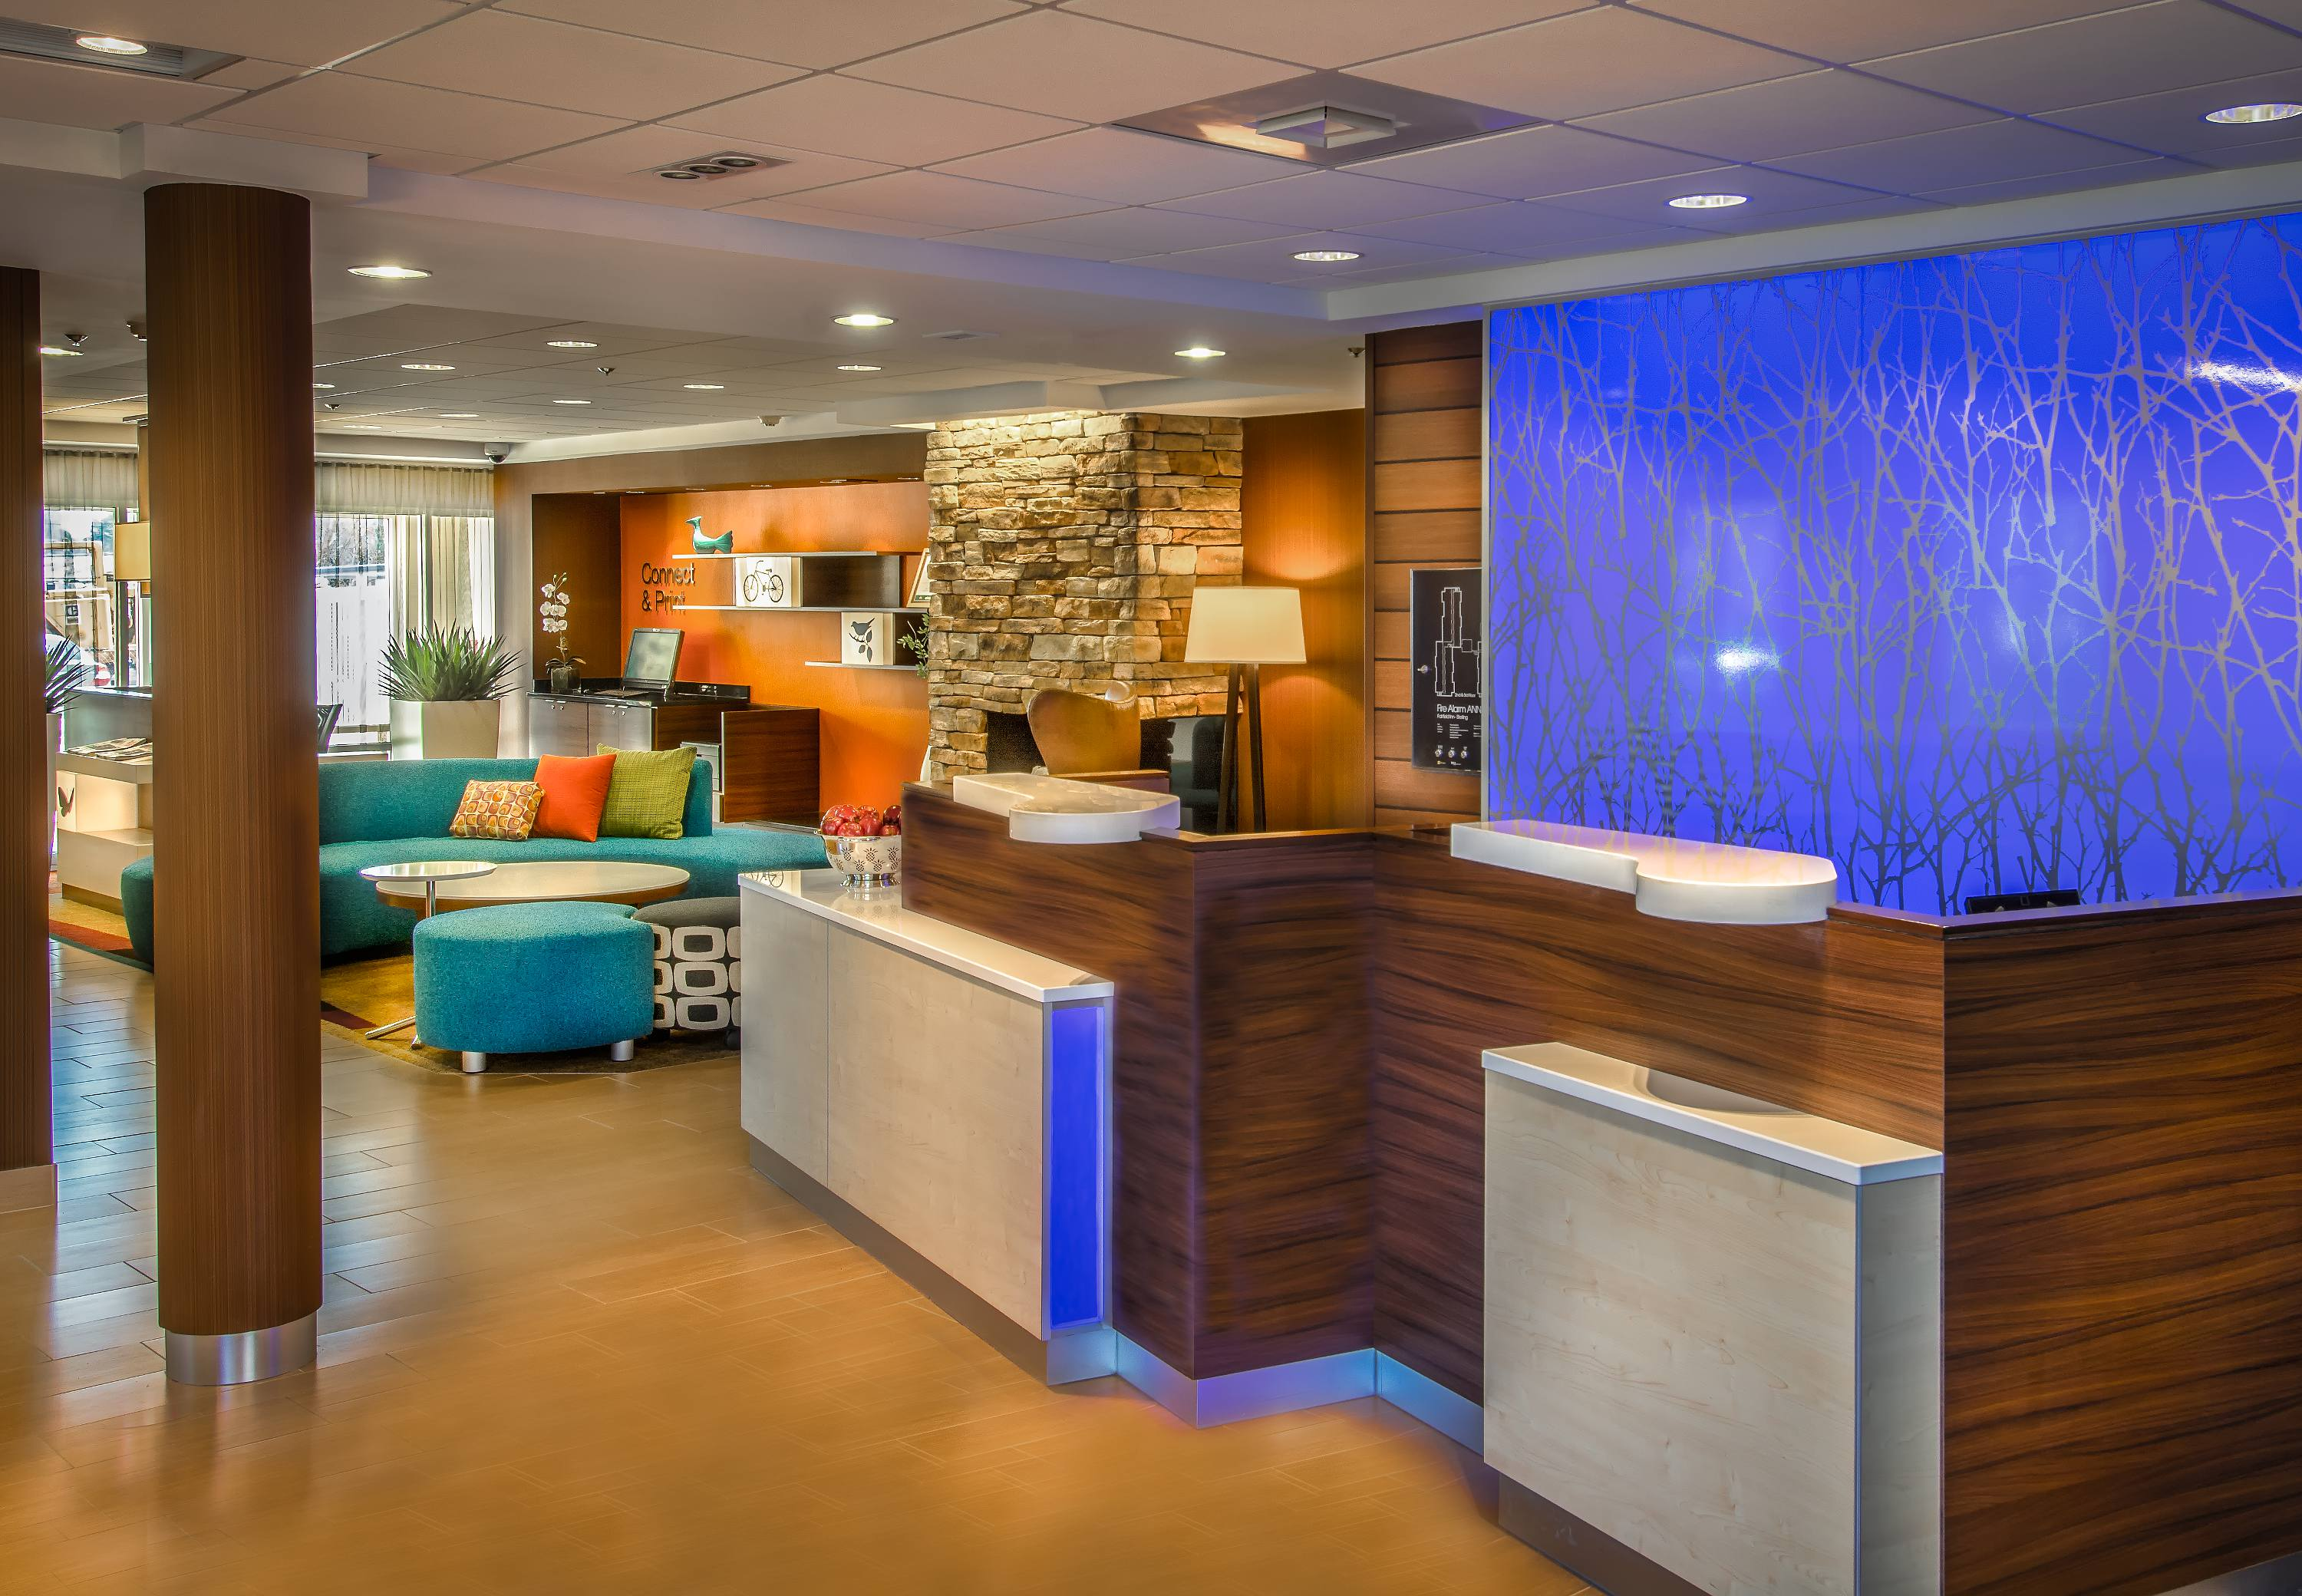 Fairfield Inn & Suites by Marriott at Dulles Airport image 0